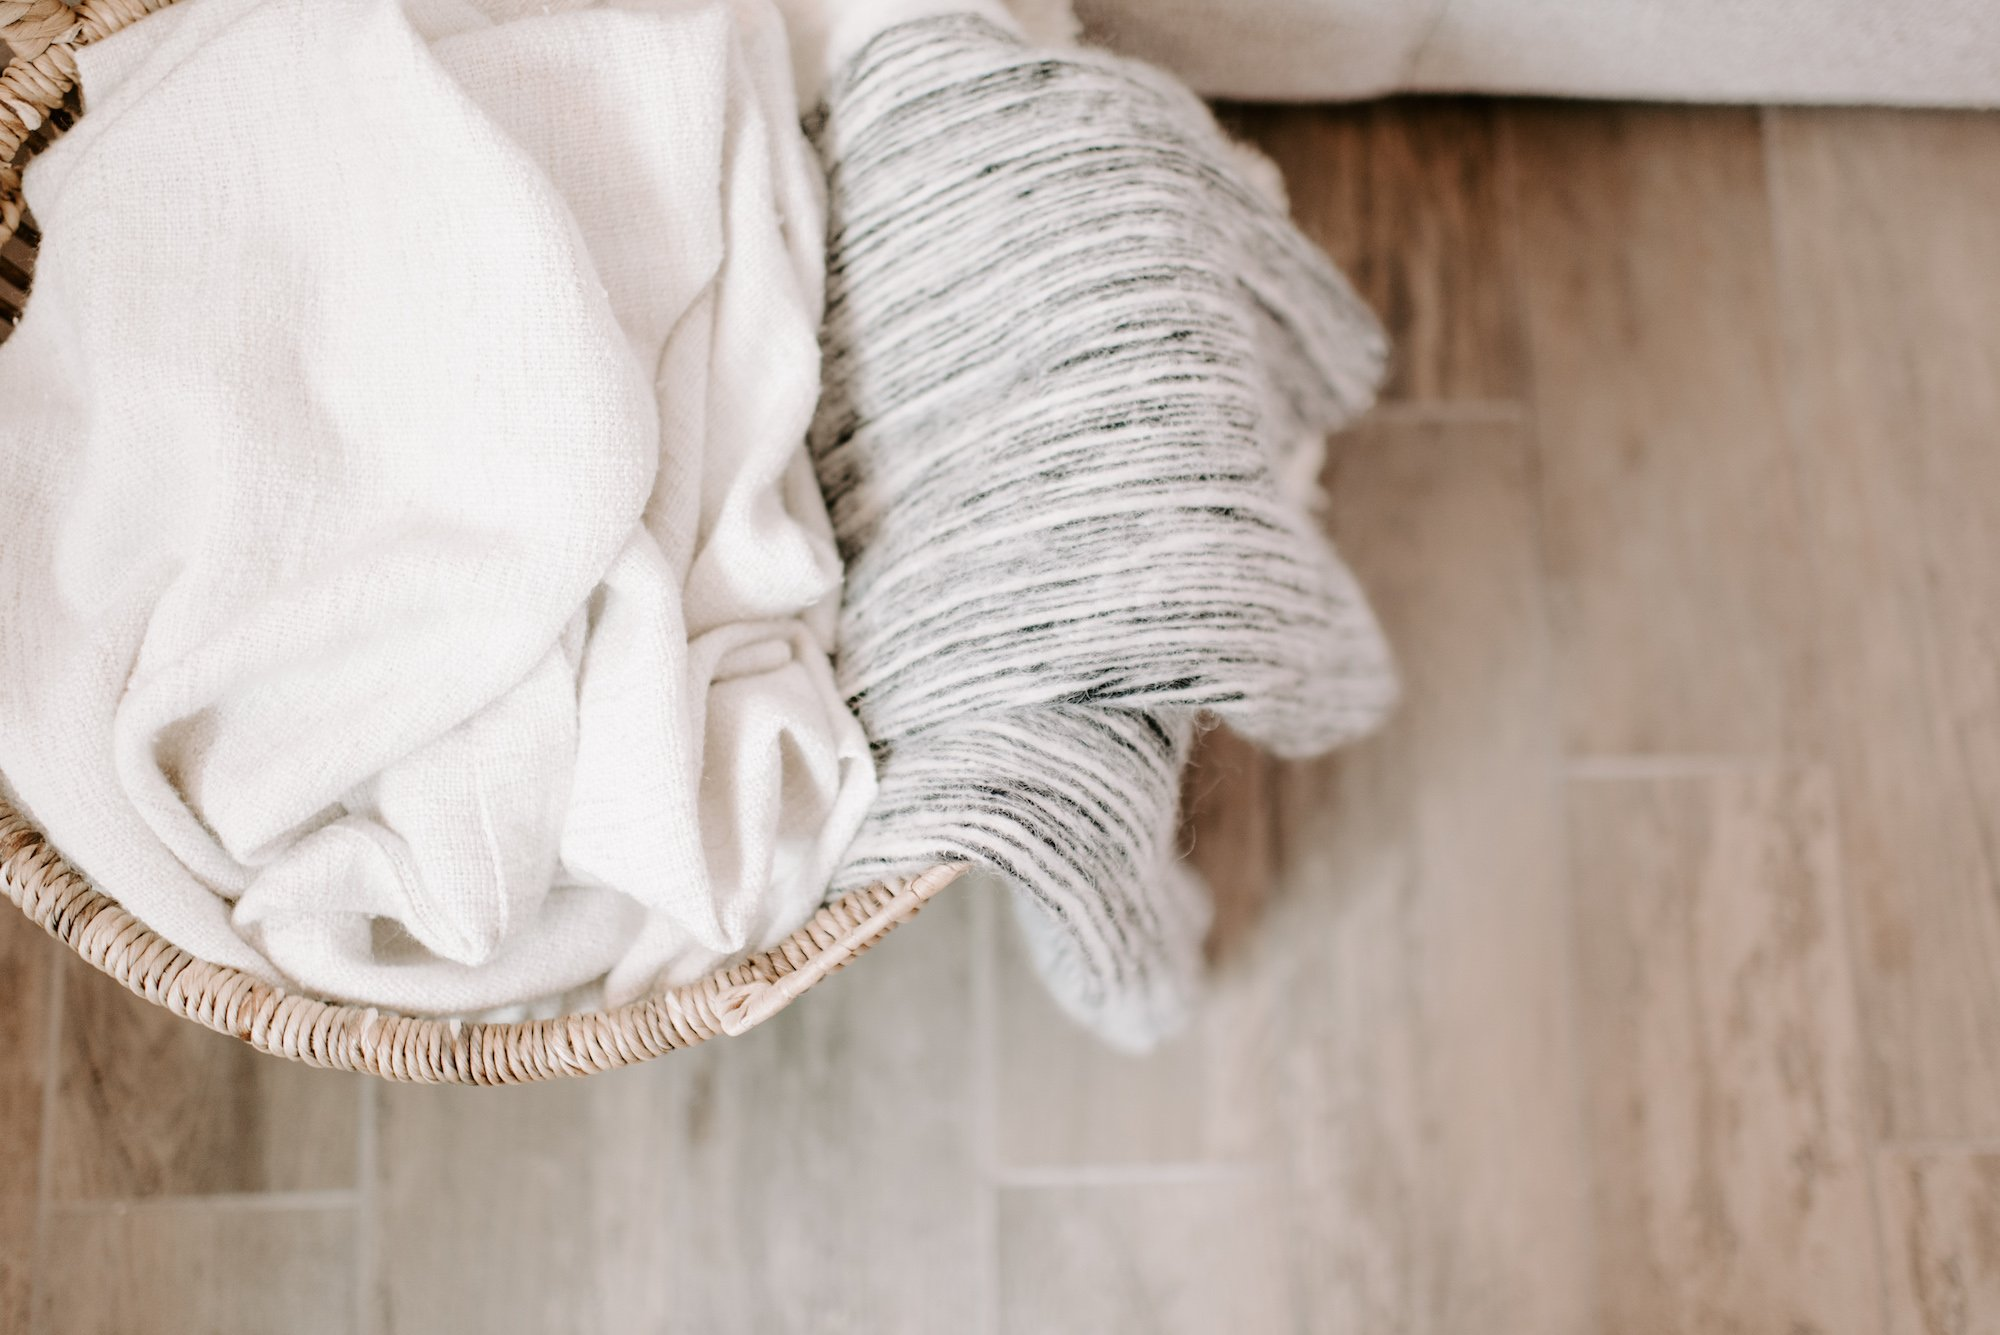 practical family laundry management tips with kids featured image